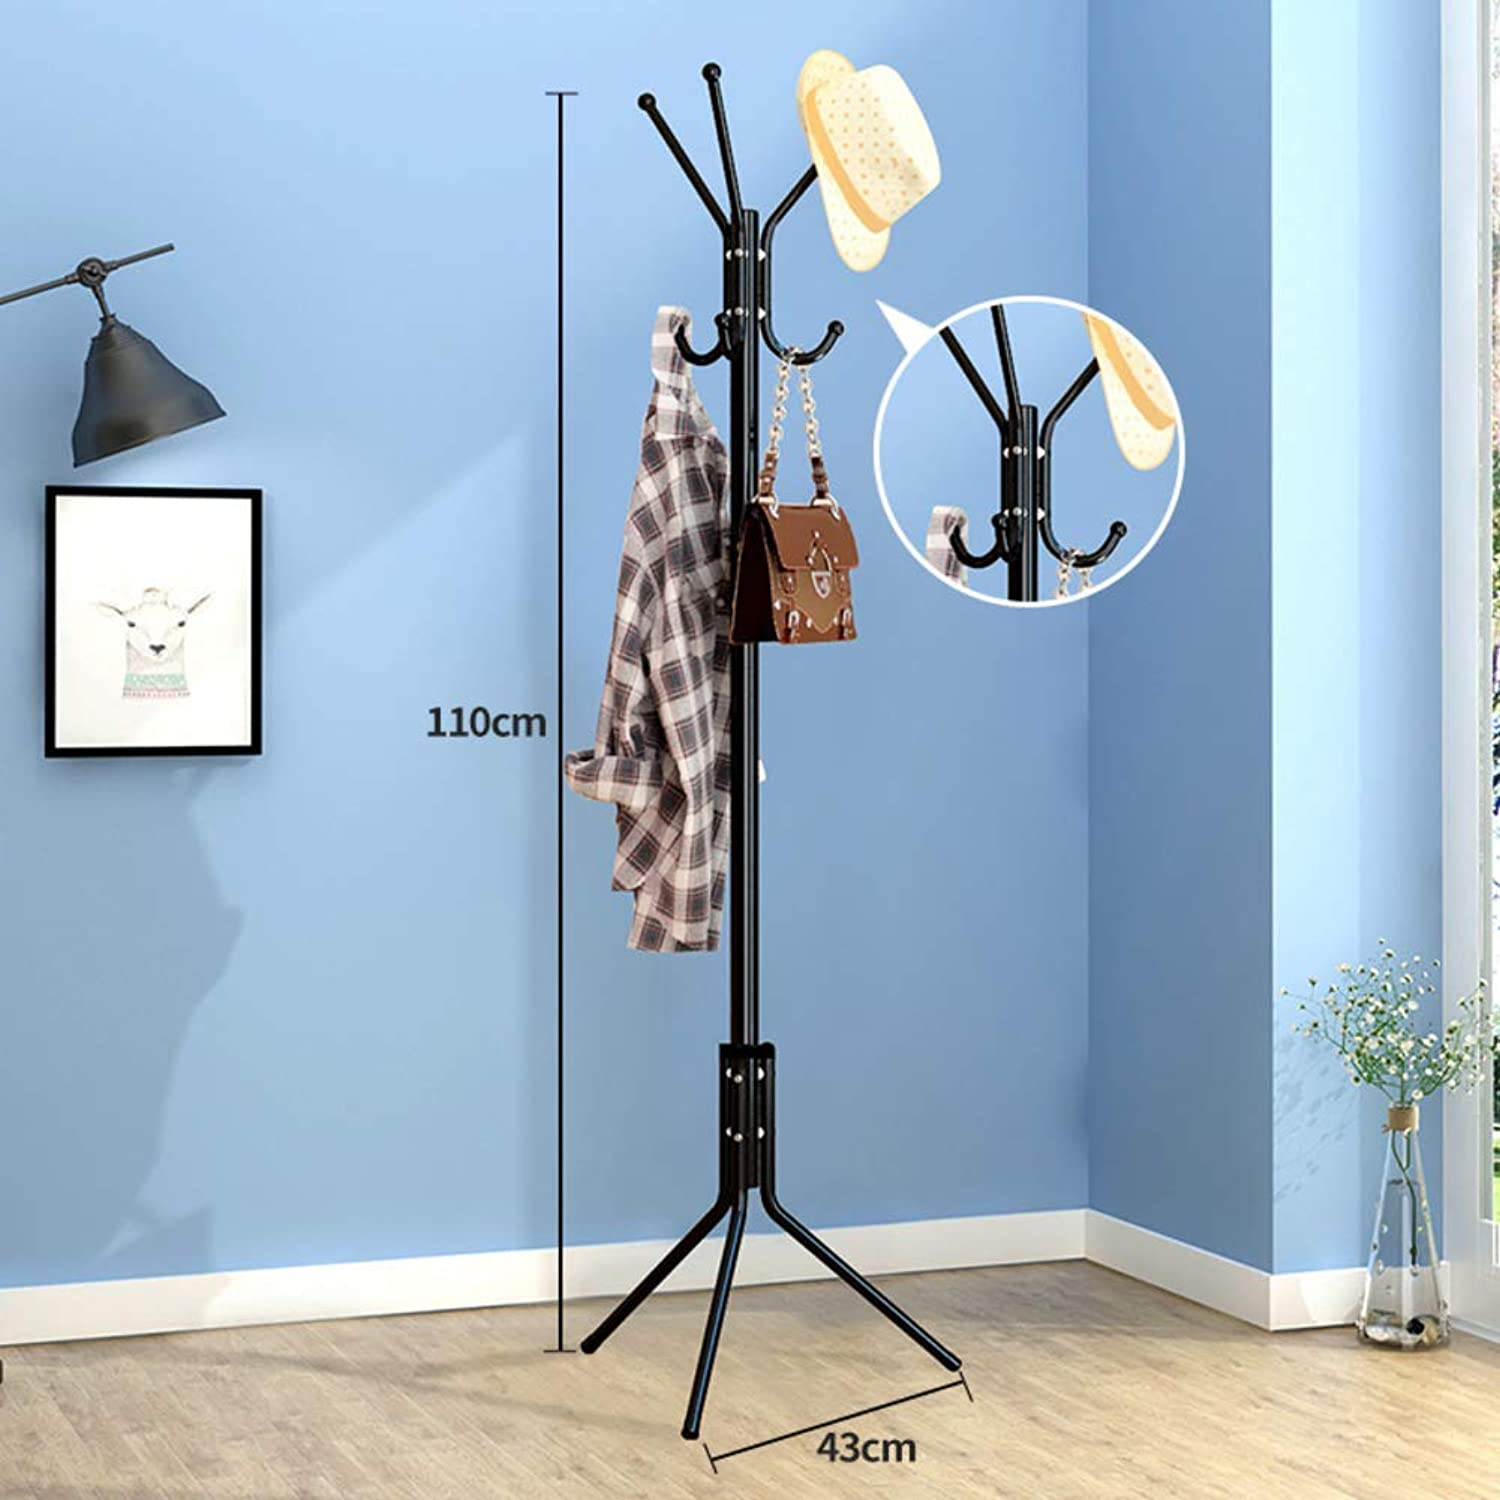 Metal Hat Coat Rack,Coat Tree Entryway Standing,Perfect Touch for Your entryway Mudroom Kitchen Bathroom More-F 43x110cm(17x43inch)